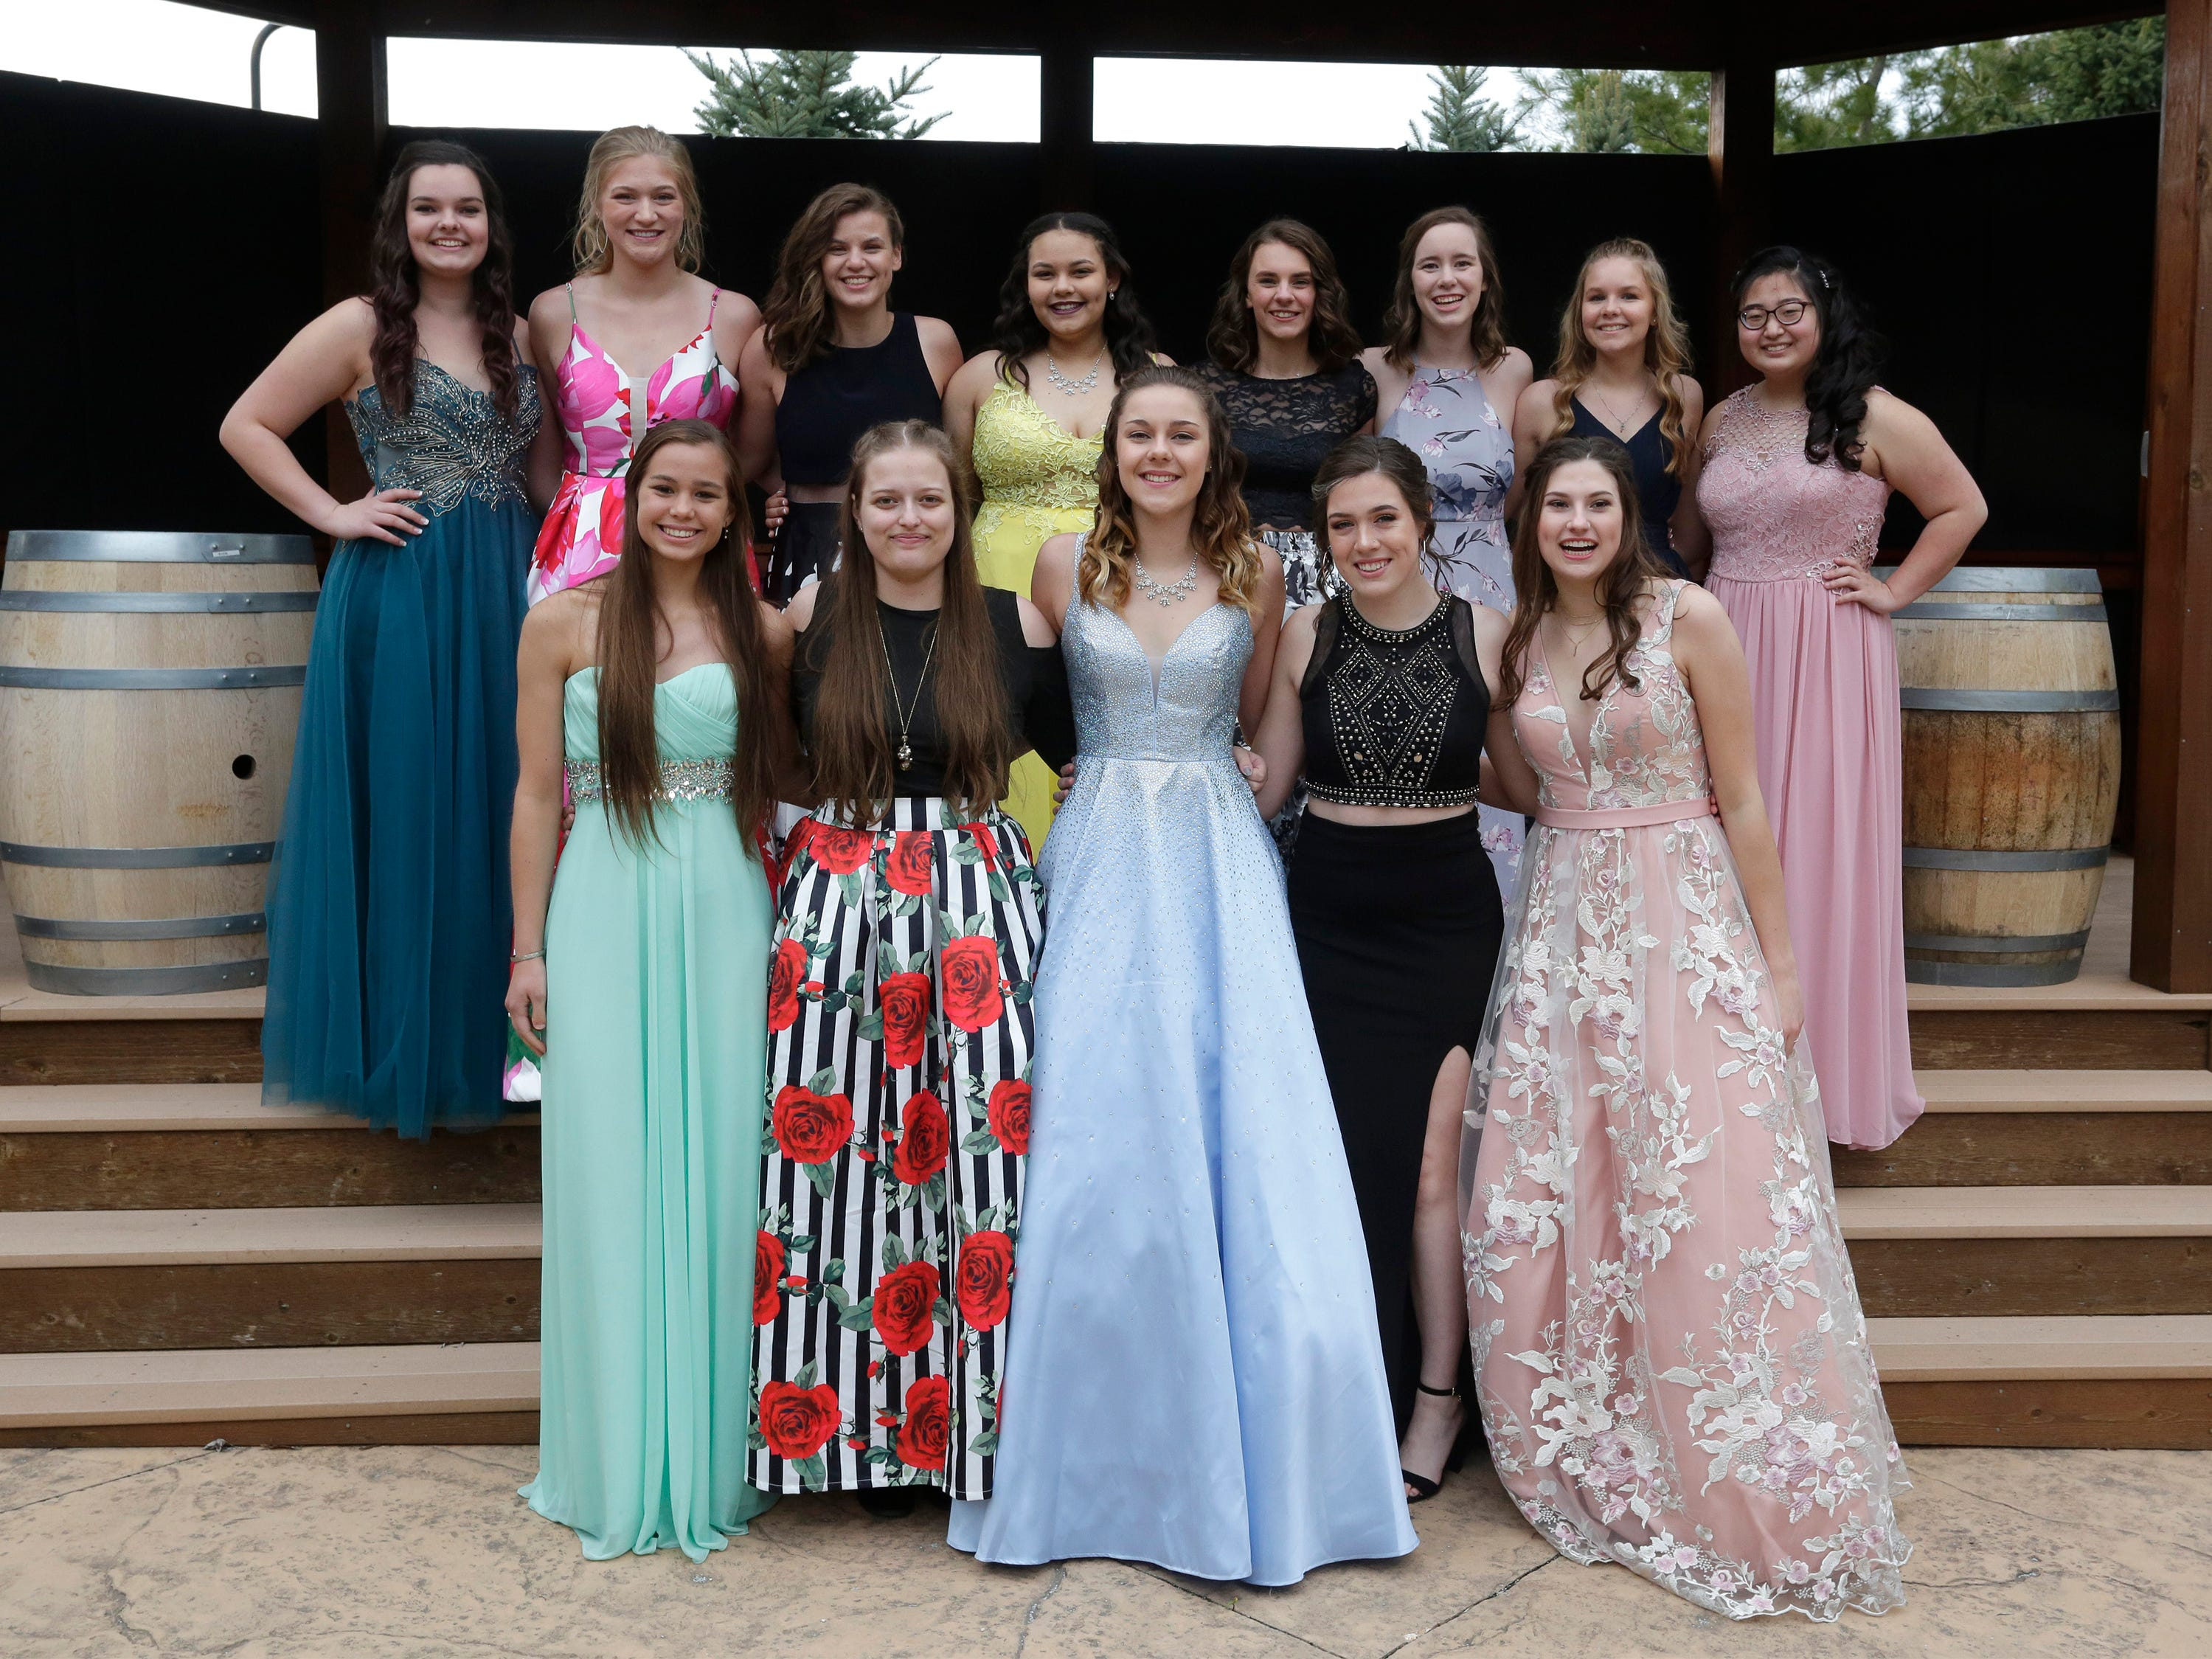 Scenes from the Sheboygan Christian Junior-Senior Banquet, Friday, May 3, 2019, at The Blind Horse, in Kohler, Wis.